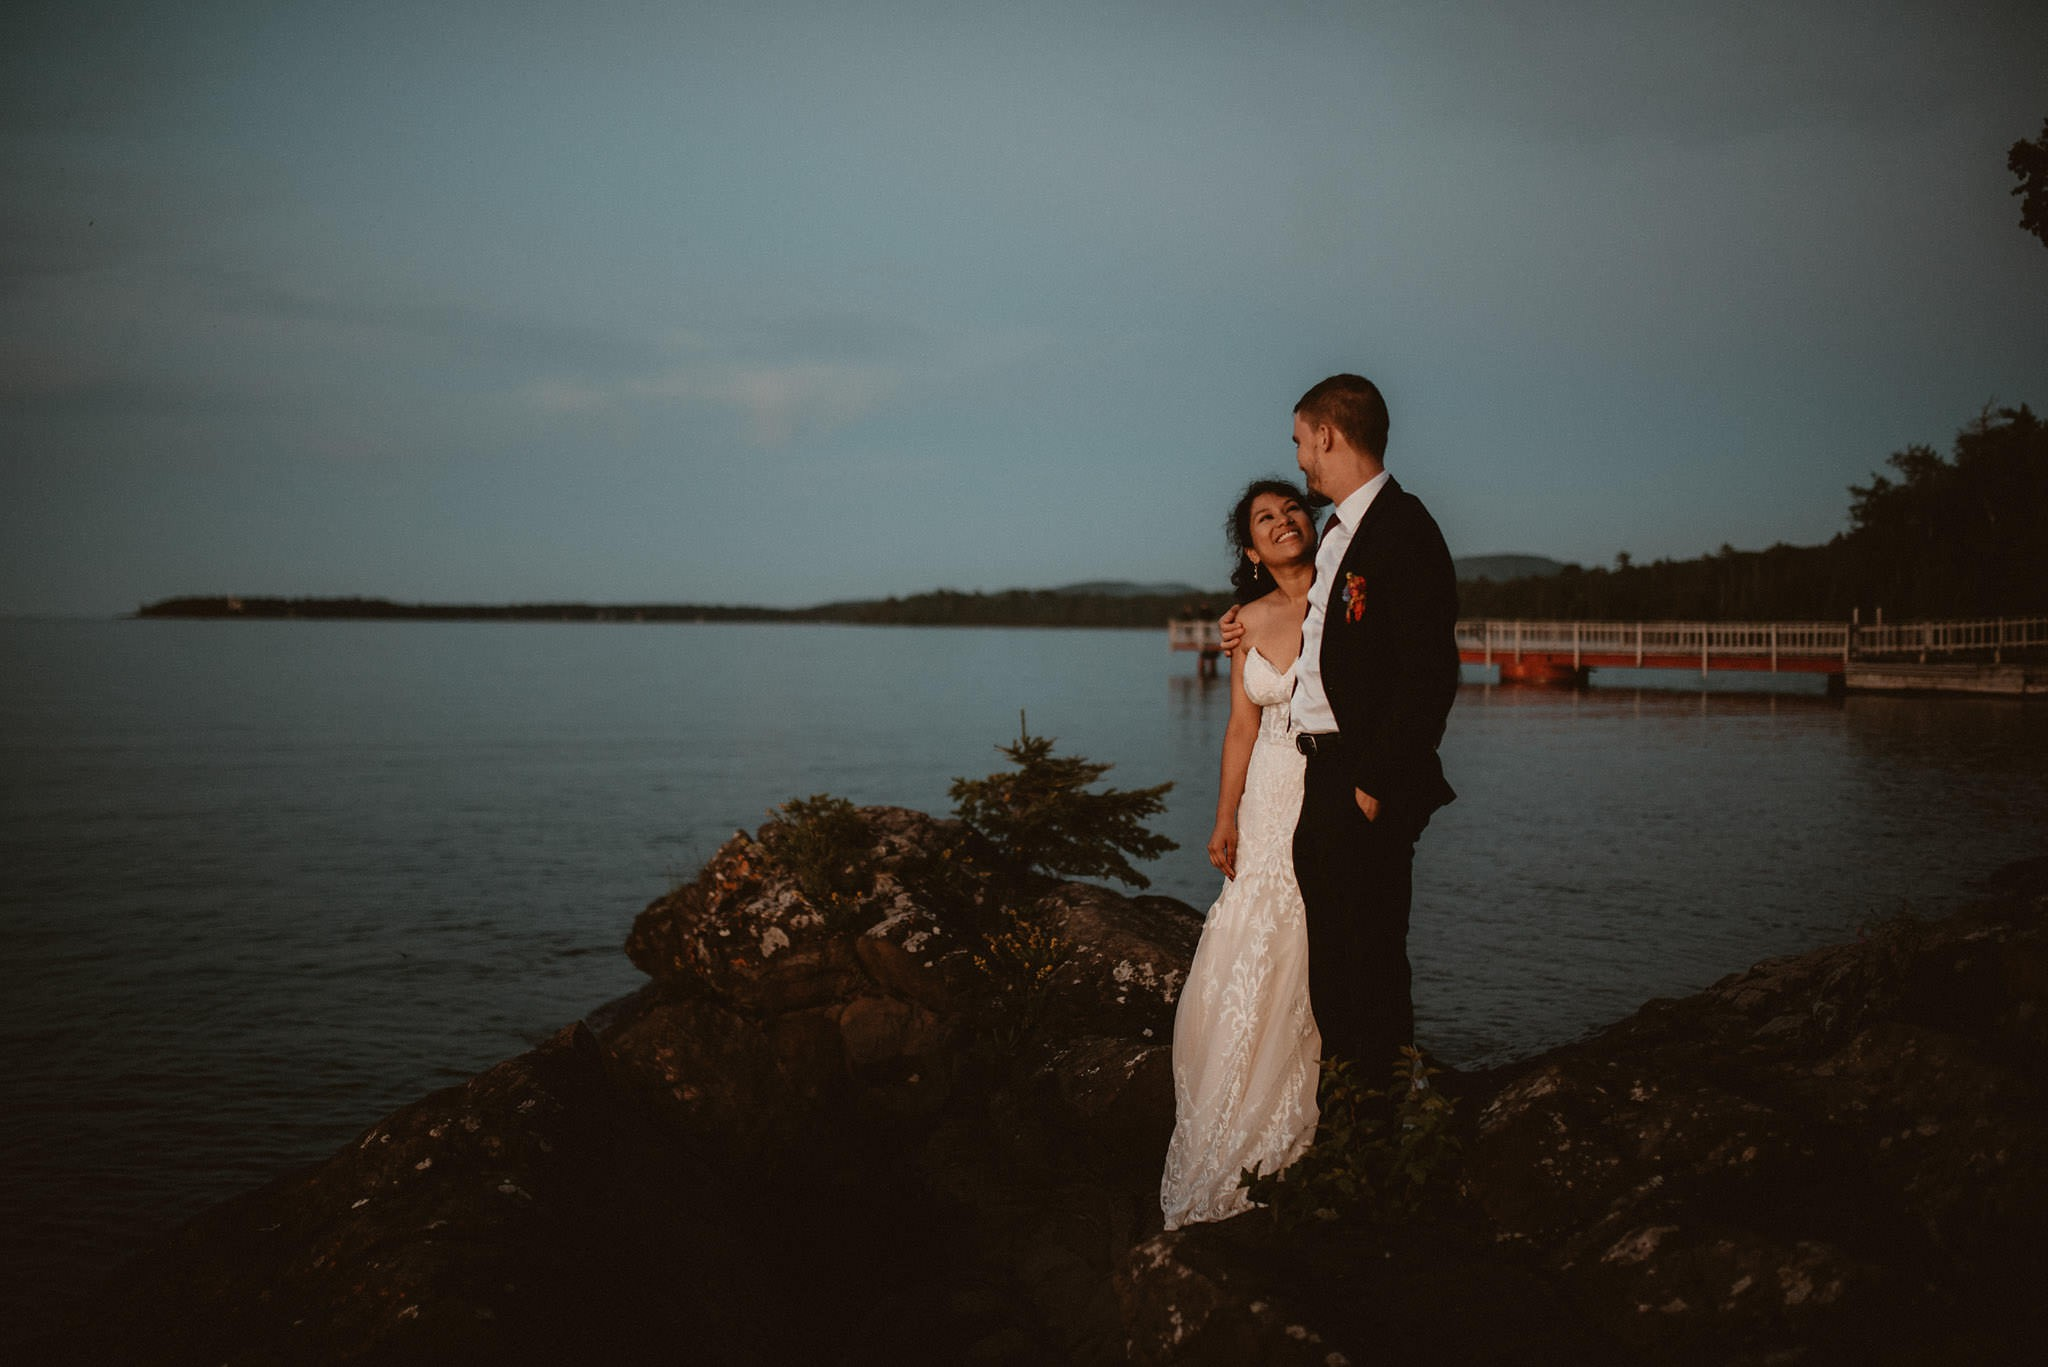 Elopement wedding in Copper Harbor Michigan - Lume Photography